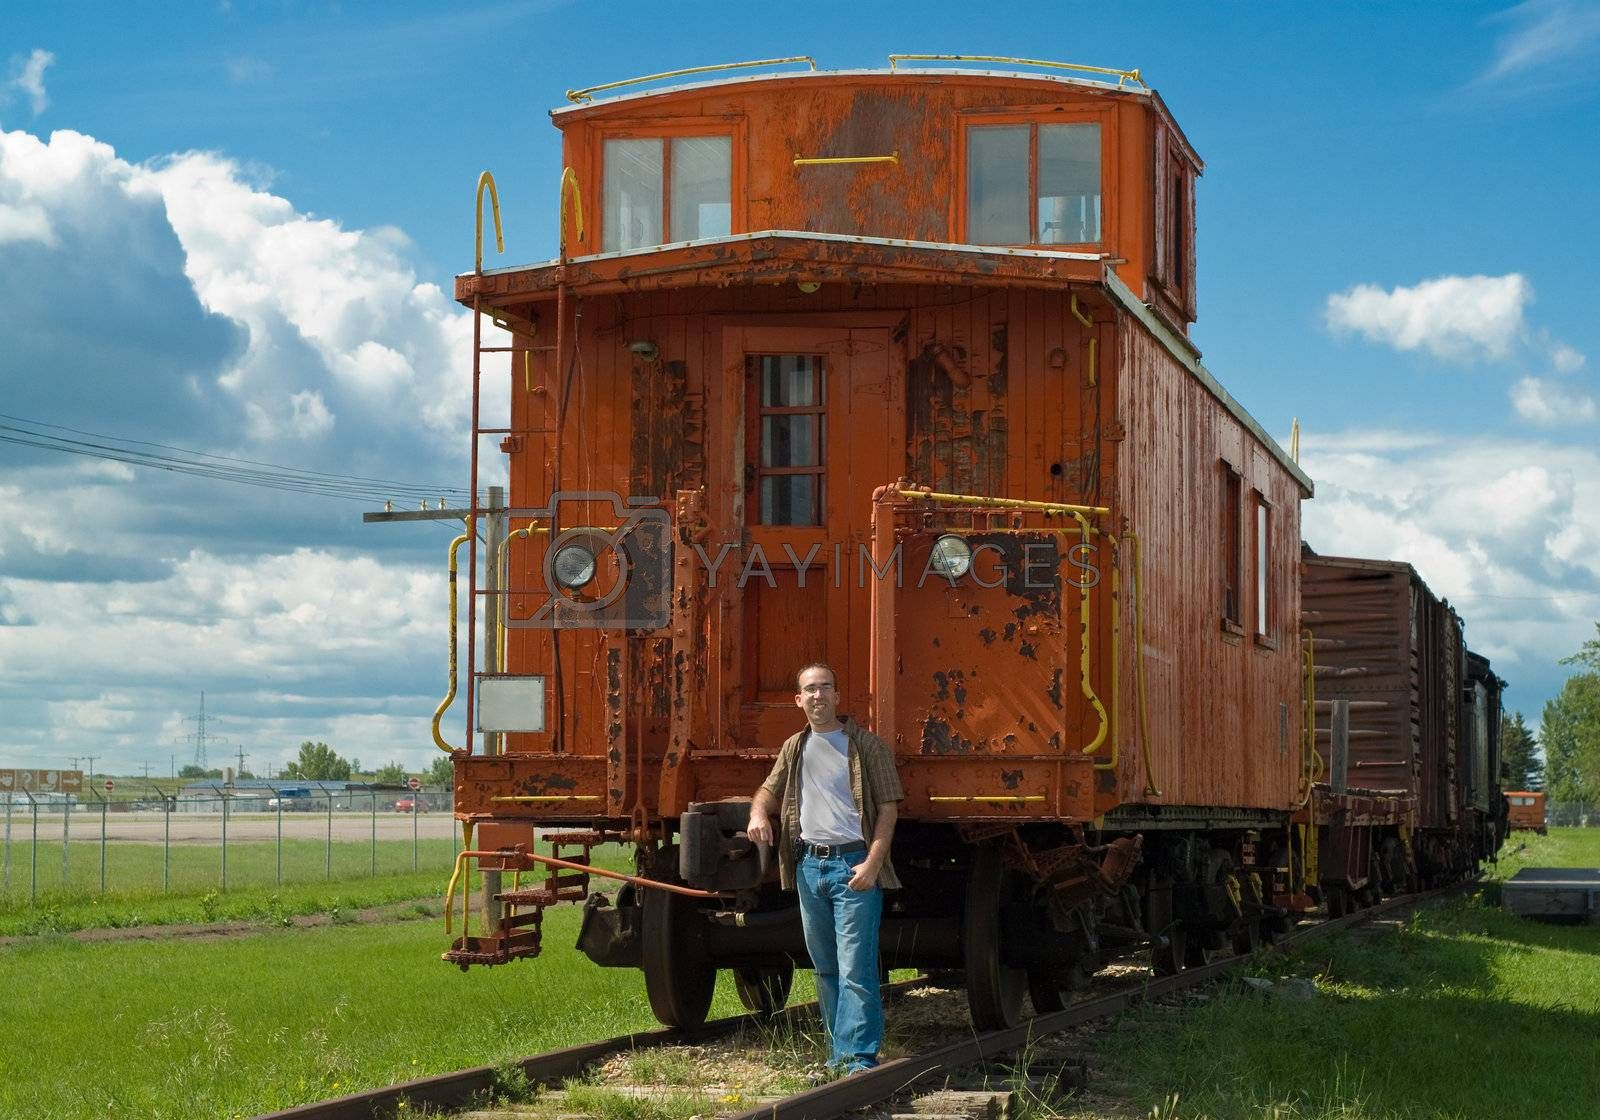 A train caboose shot on a partly cloudy day along with a young man to show the size of it